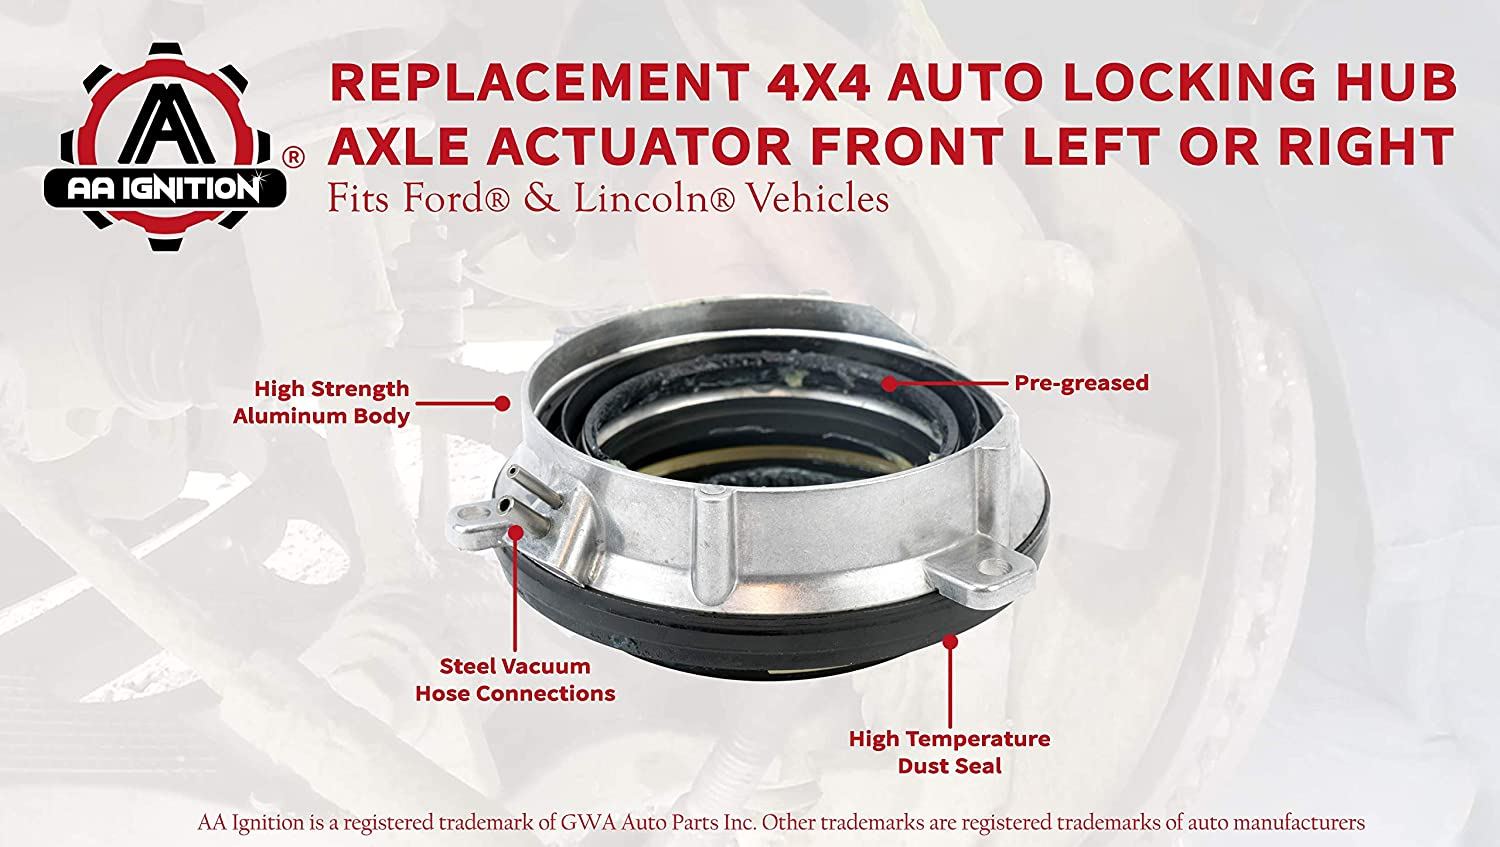 7L1Z-3C247-A 2003-2012 Ford Expedition 2003-2012 Lincoln Navigator Replaces Part# 4-Wheel Drive 4x4 4WD Auto Locking Hub Axle Actuator Front Left or Right Fits 2004-2012 Ford F150 7L1Z3C247A